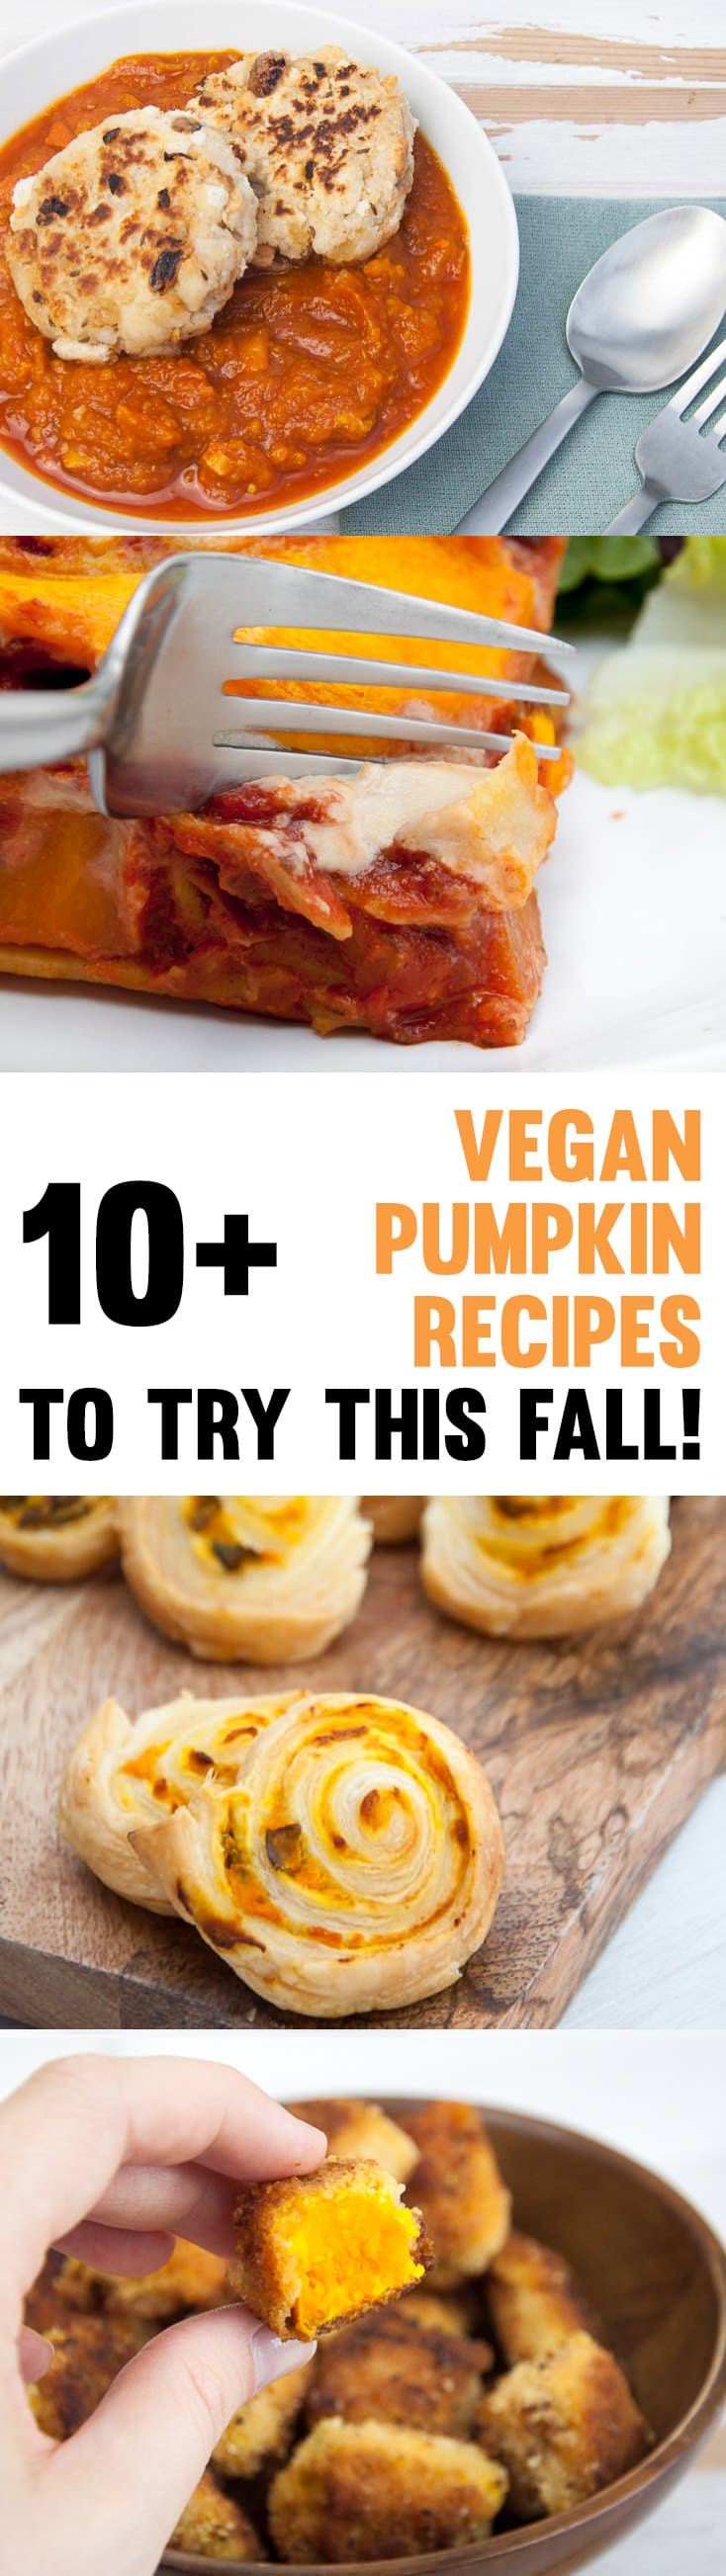 10+ Vegan Pumpkin Recipes to Try this Fall! #vegan #pumpkin #recipes #fall #autumn | ElephantasticVegan.com